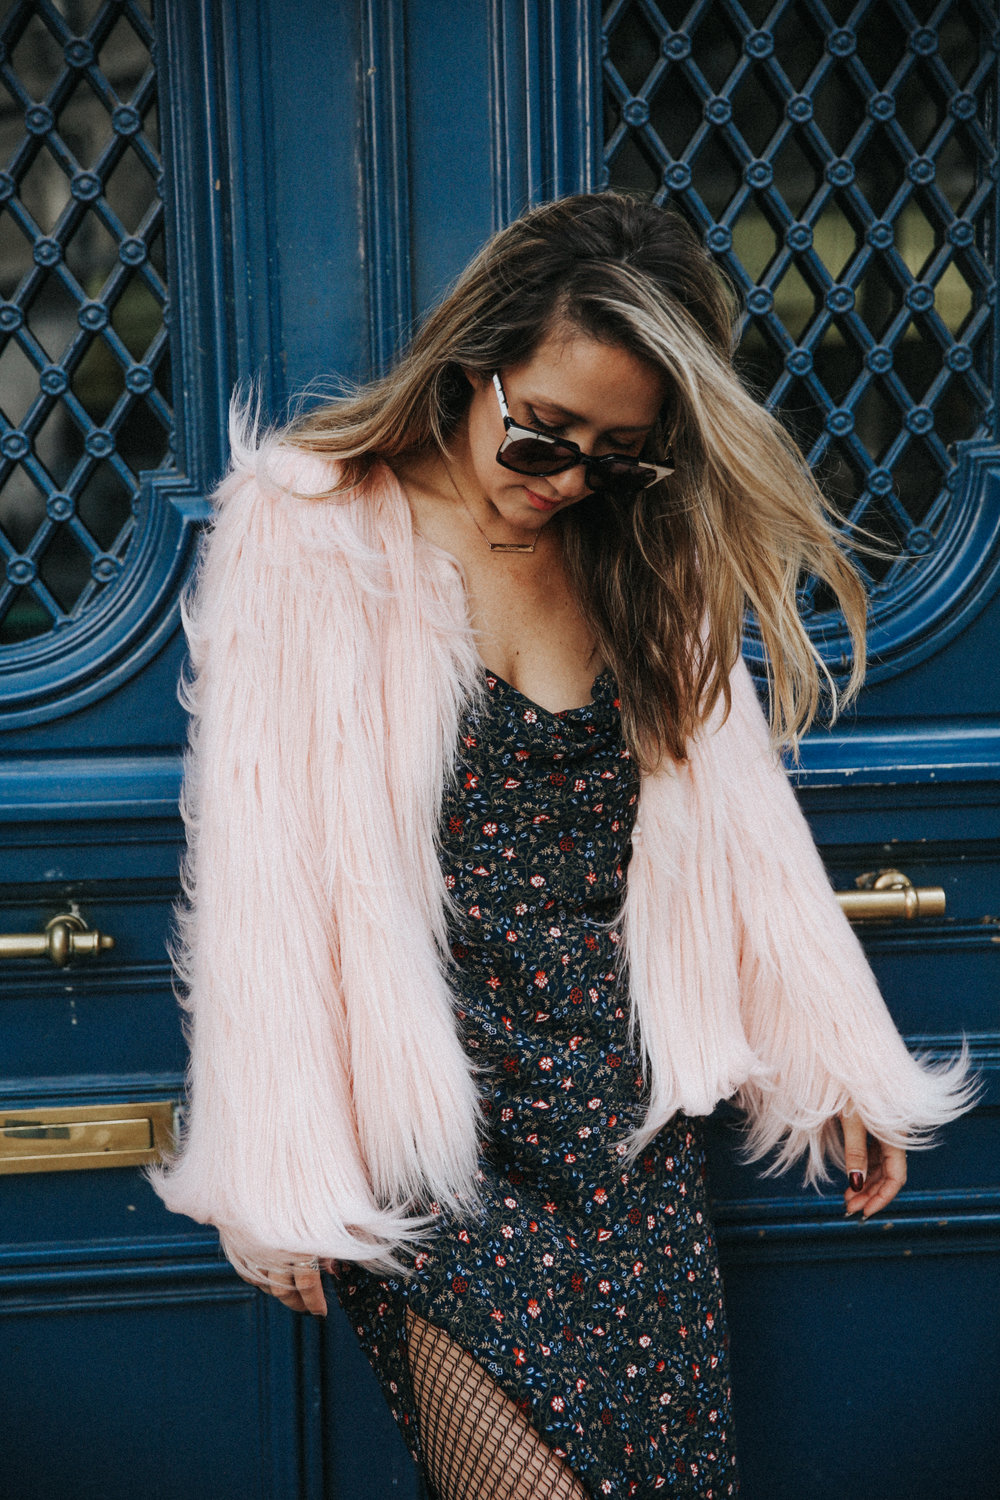 The Style Sauce pink fur jacket street style fashion blogger style Paris style // #streetstyle #fashionblog #fashionbloggerstyle #pinkfur #furjacket